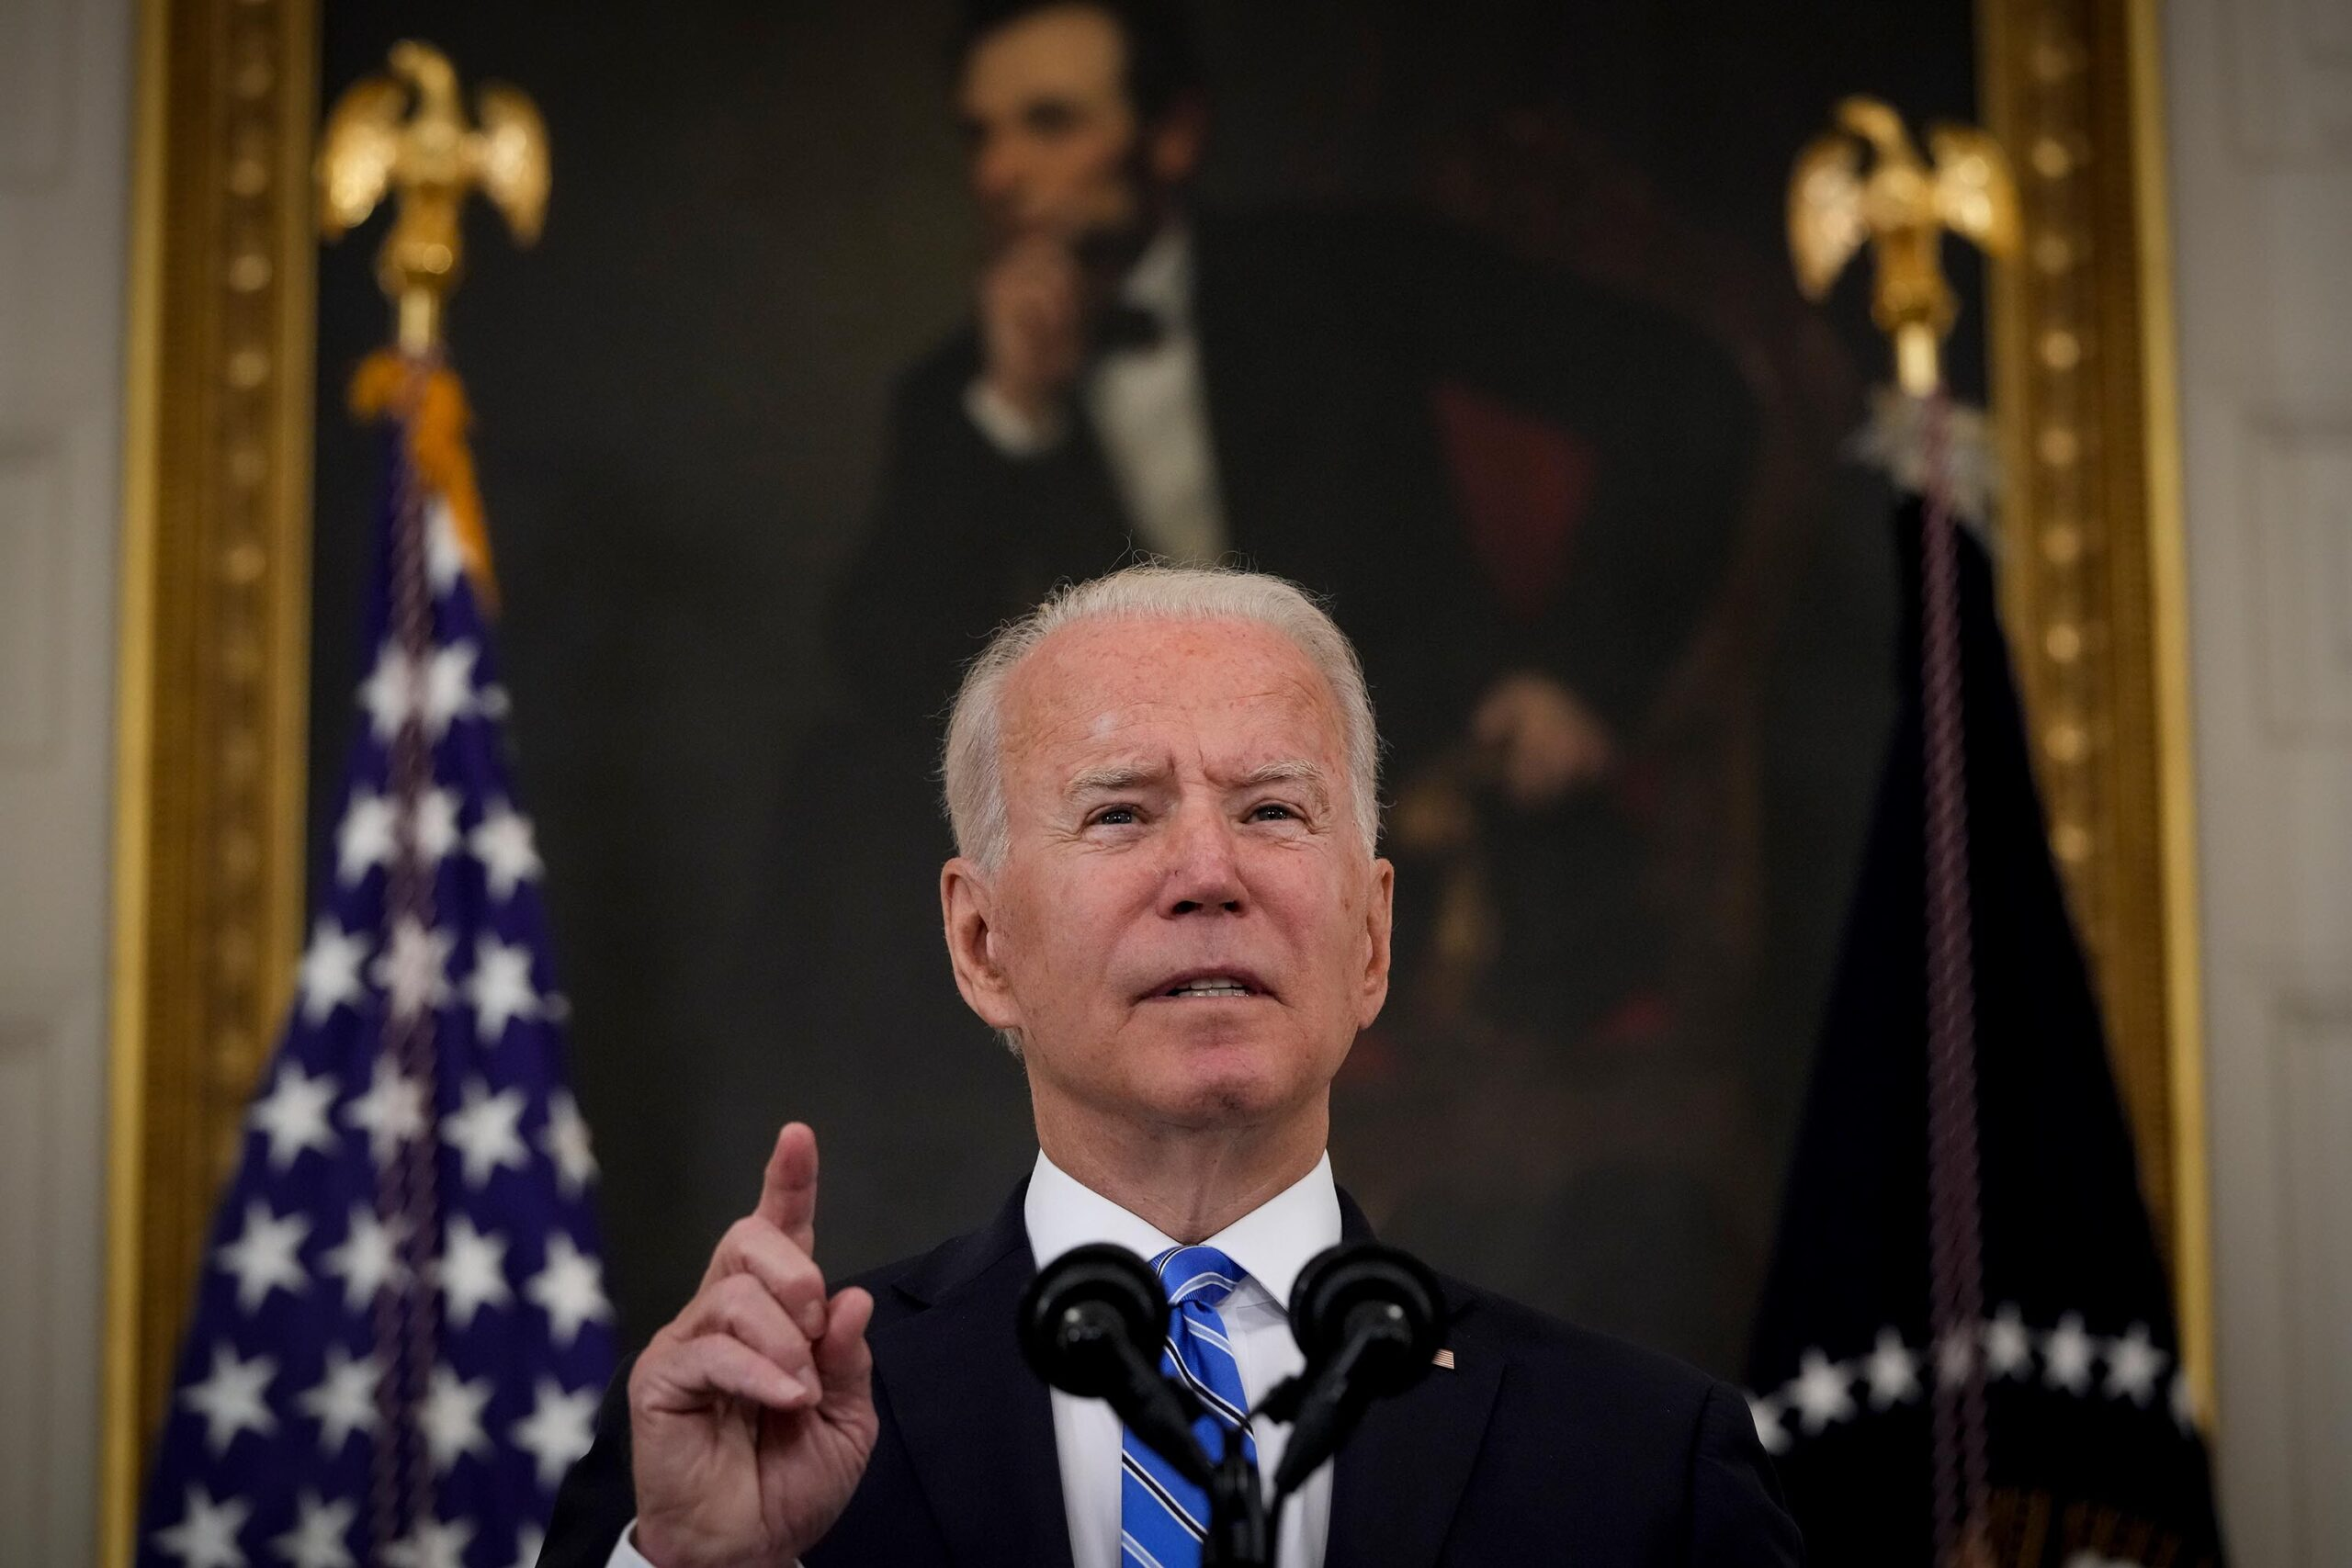 <i>Drew Angerer/Getty Images</i><br/>President Joe Biden speaks about the nation's economic recovery in the State Dining Room of the White House on July 19 in Washington